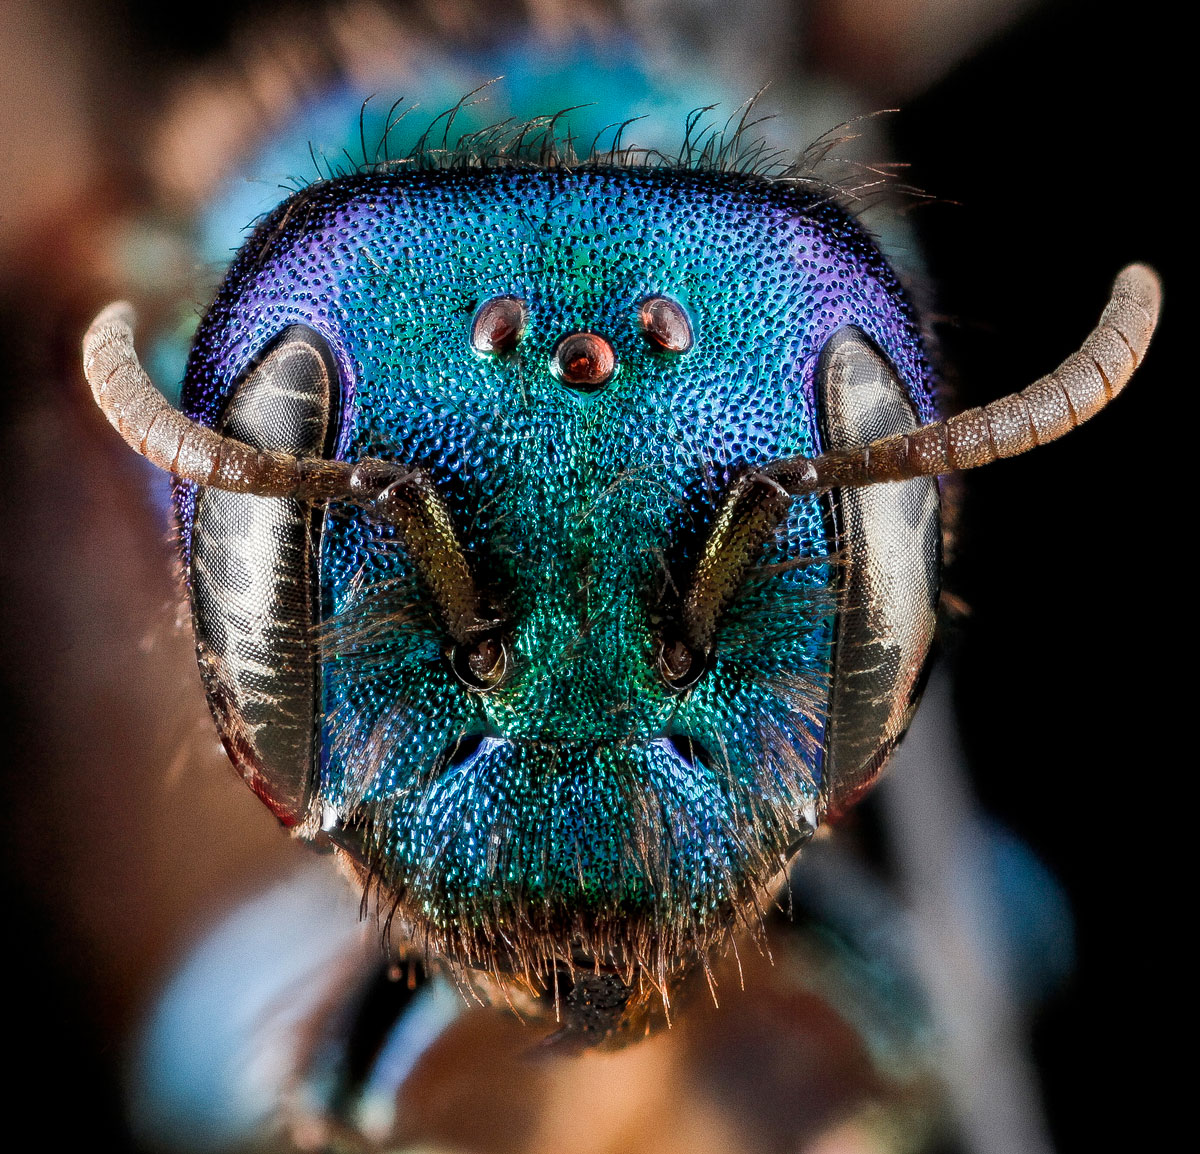 Close-Ups of Insect Eyes by usgs biml (19)